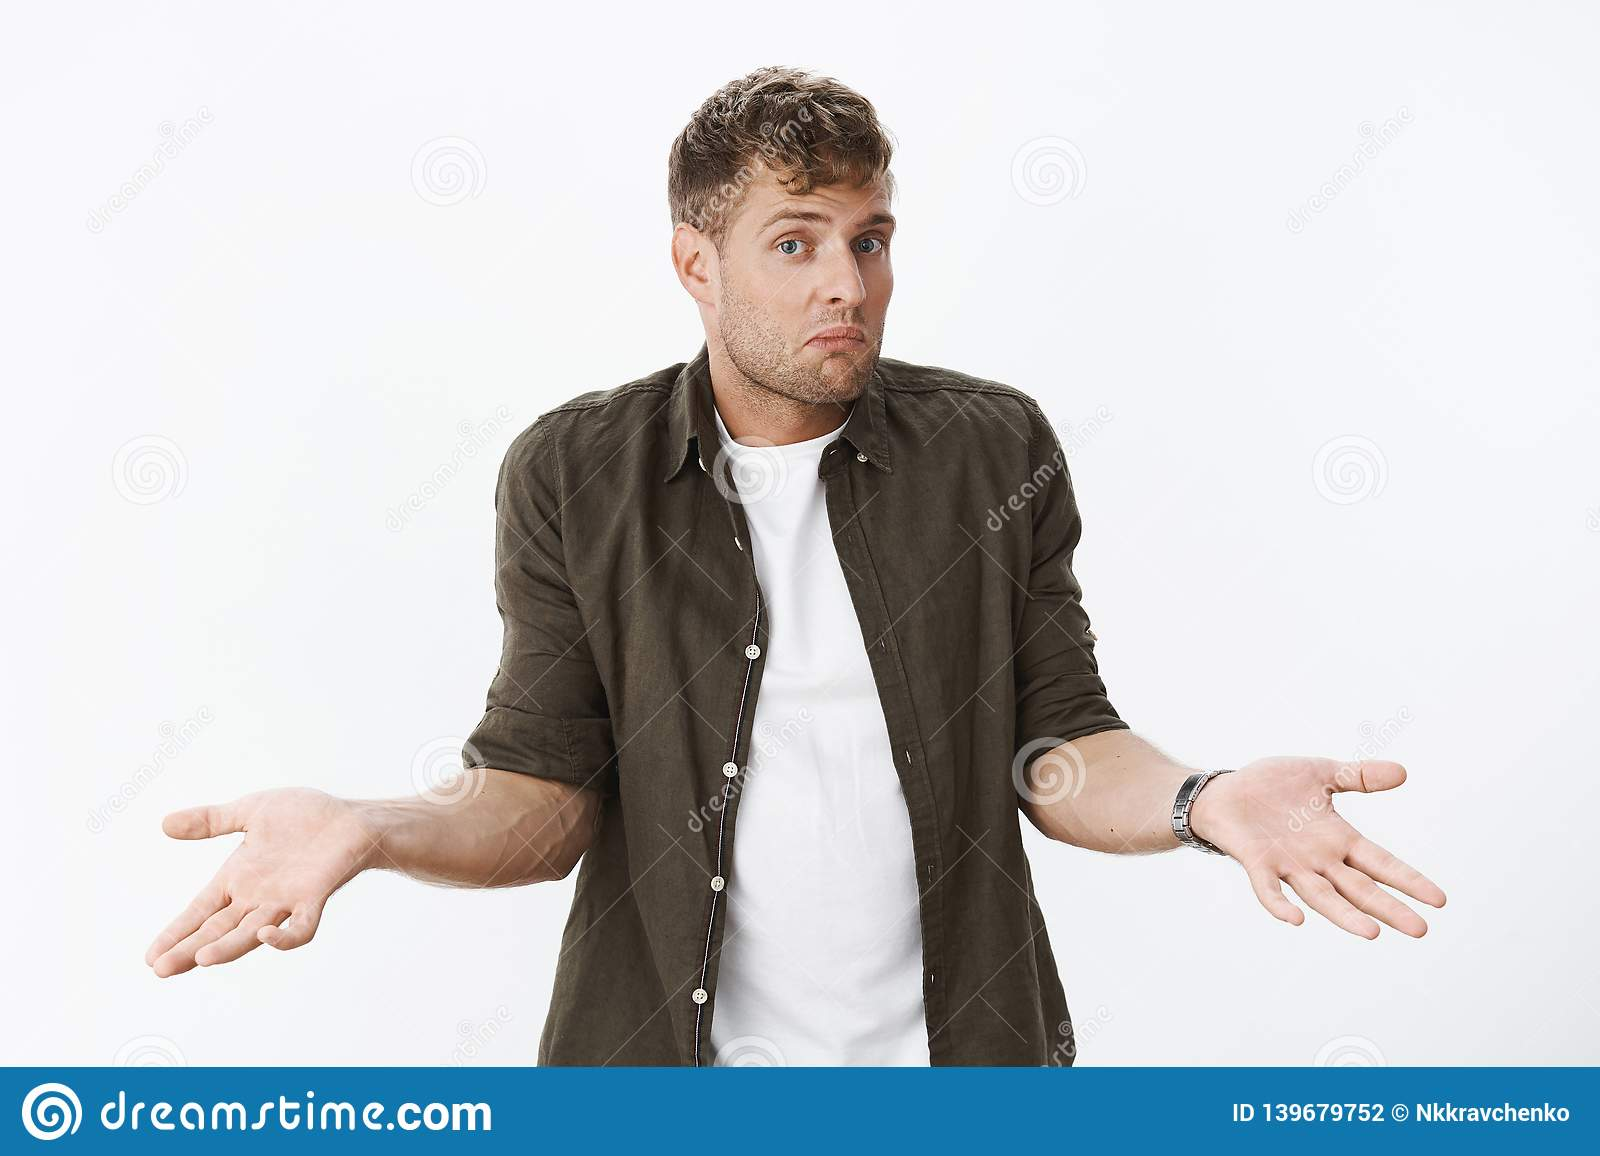 Clueless guy shrugging shoulders as being unaware. Portrait of confused cute blond man holding hands sideways dazed